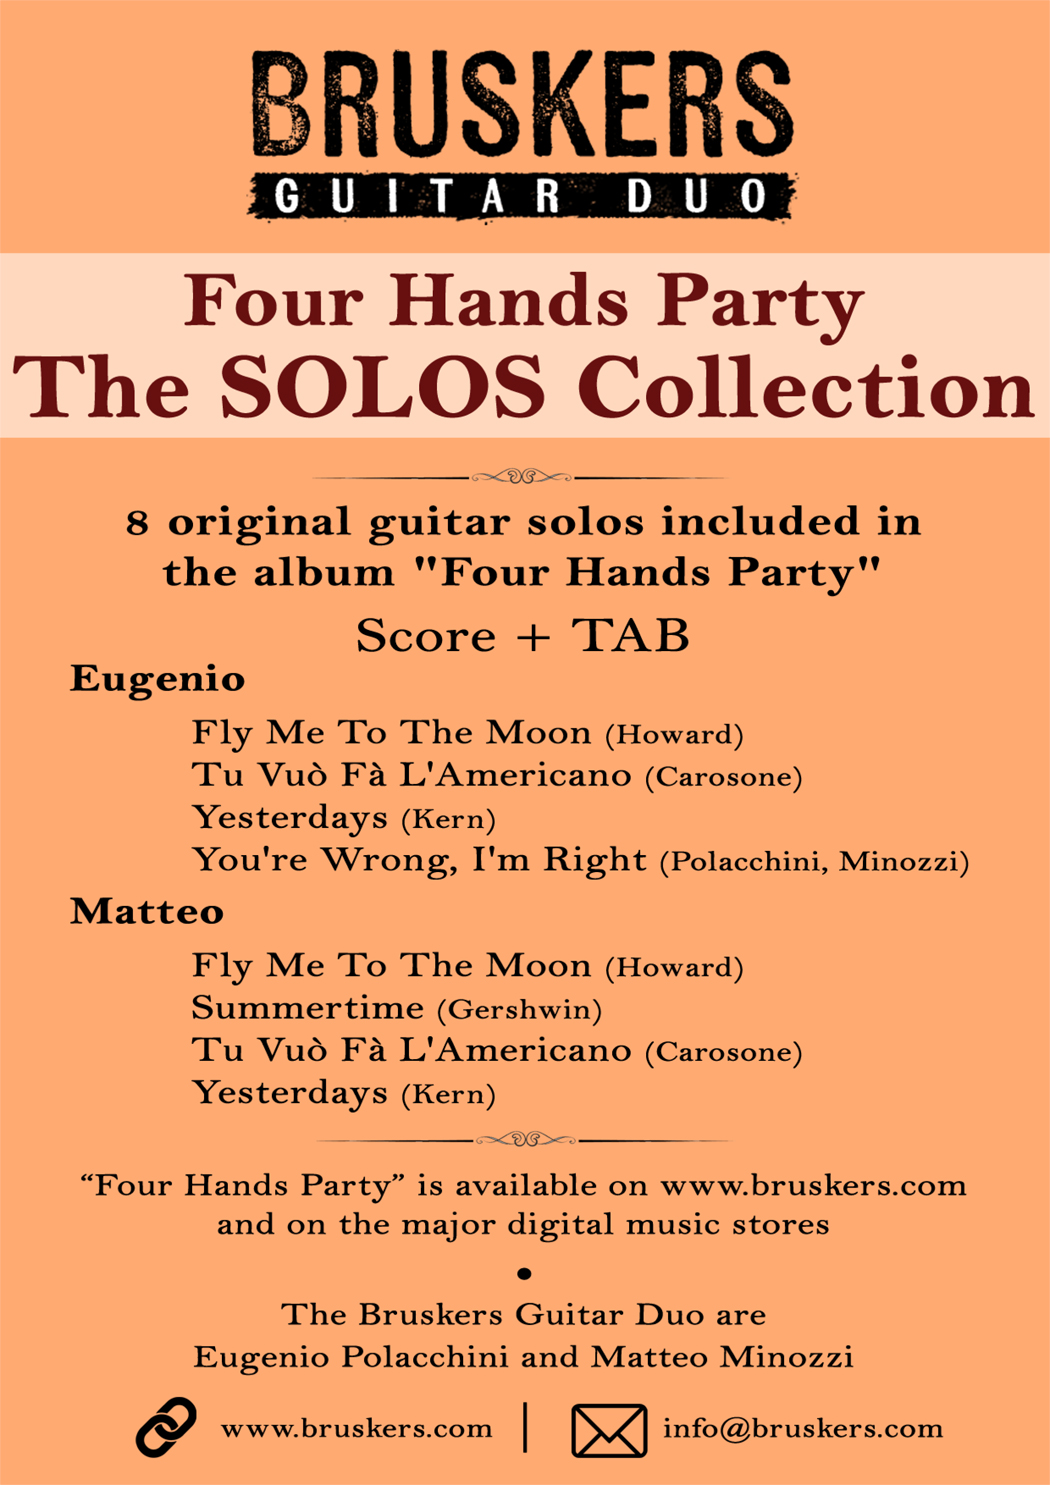 The Solos Collection of Four Hands Party - Score Cover - Bruskers Guitar Duo